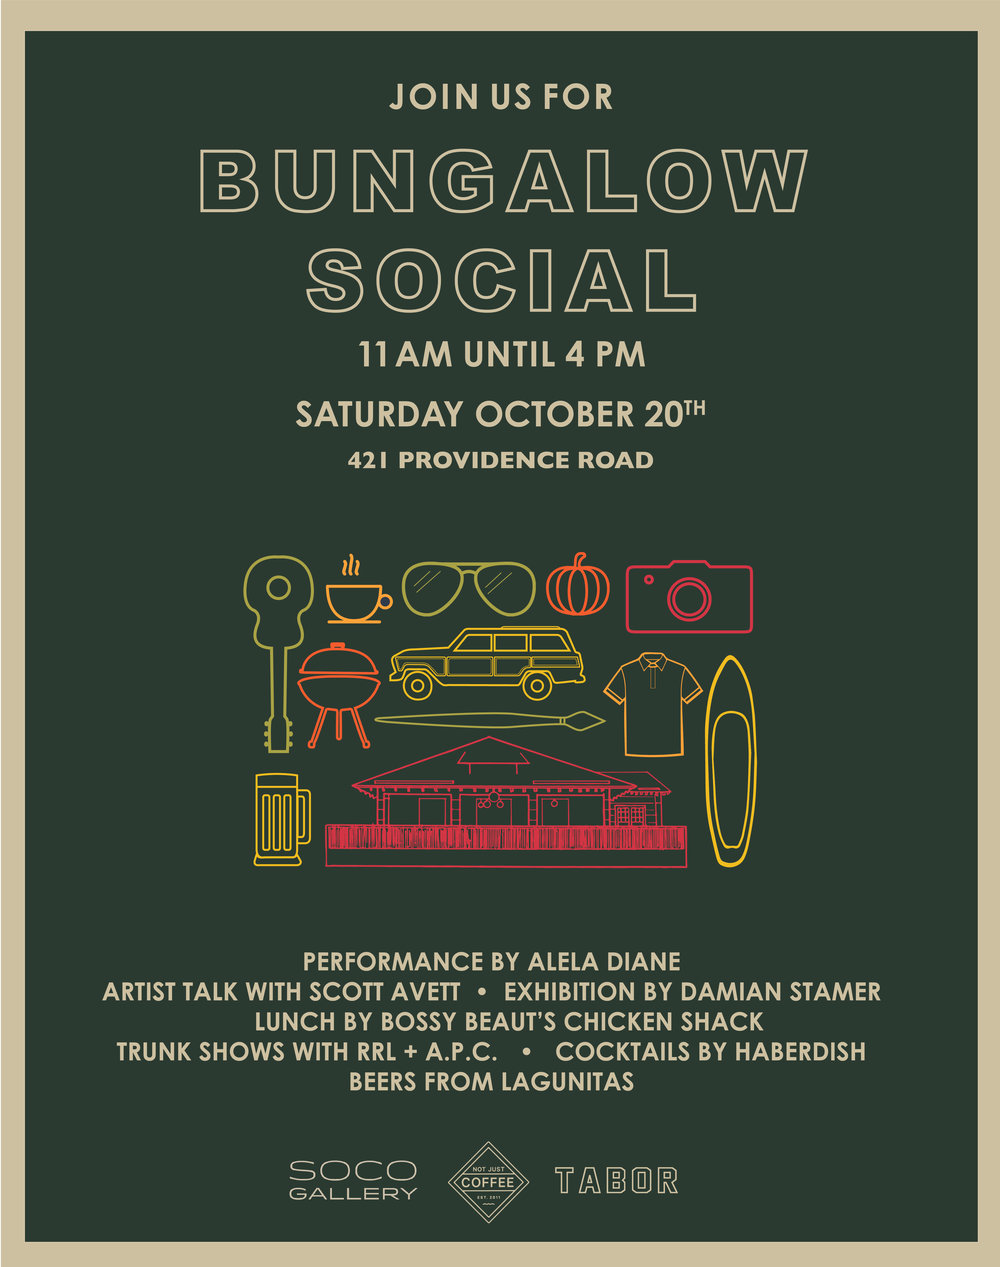 Bungalow Social Invite Final.jpg